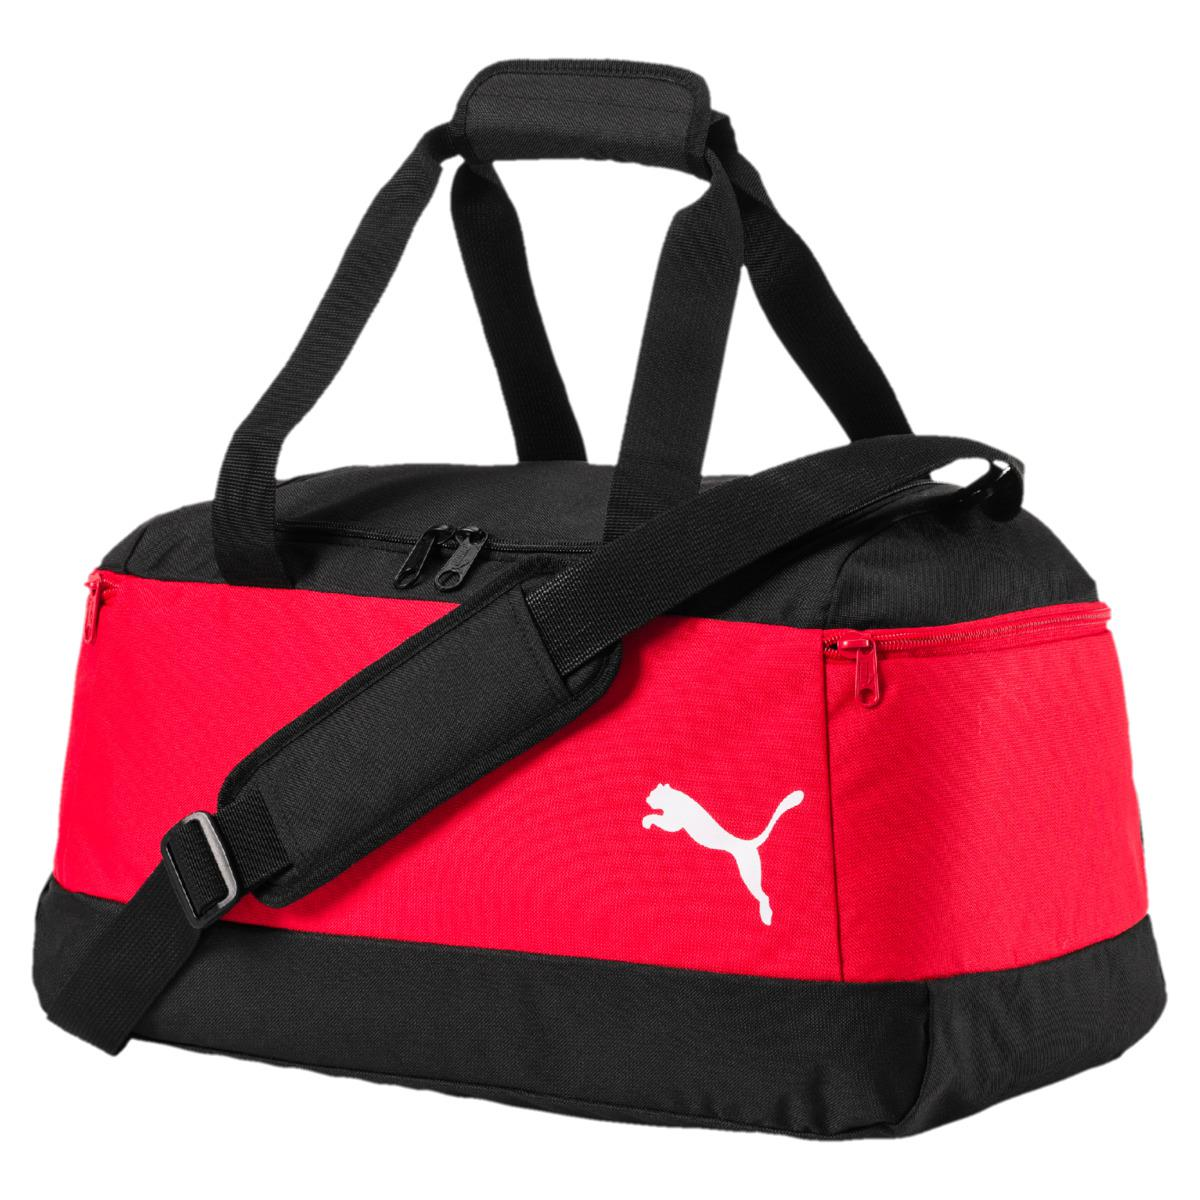 097475c1aea9 PUMA. Men s Red Pro Training Ii Small Sports Bag.  30 From El Corte Ingles